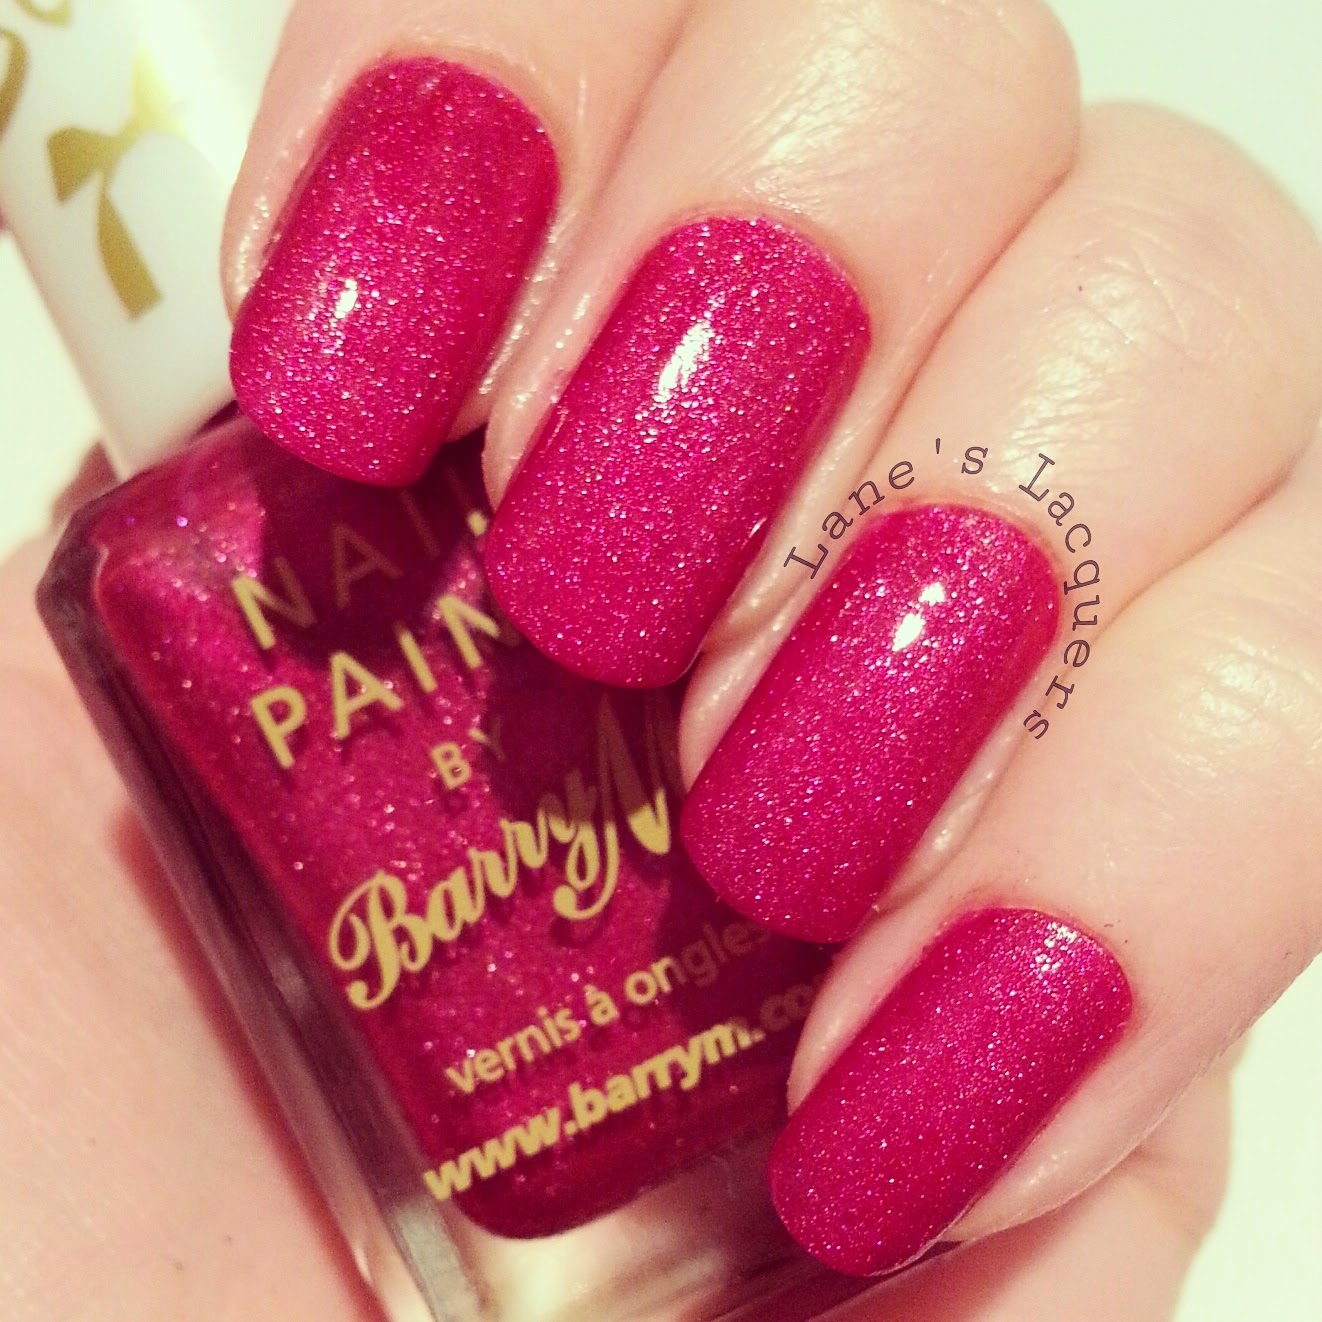 new-barry-m-silk-poppy-swatch-manicure-with-topcoat